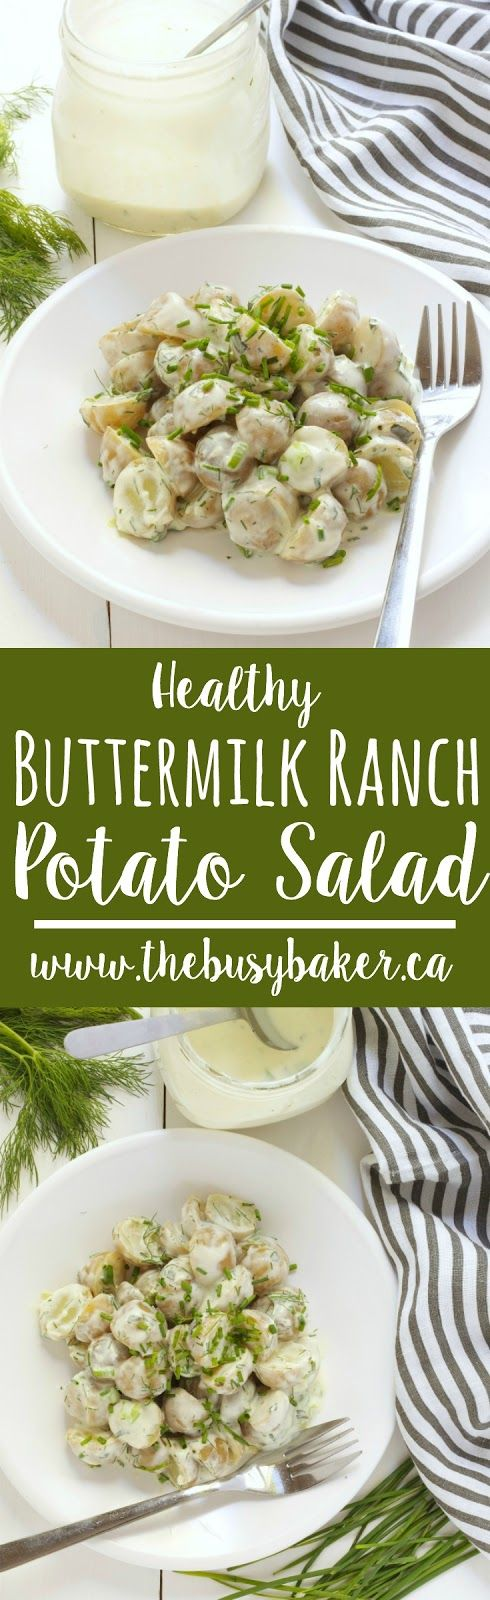 This Healthy Buttermilk Ranch Potato Salad is great for all your summer barbecues! www.thebusybaker.ca